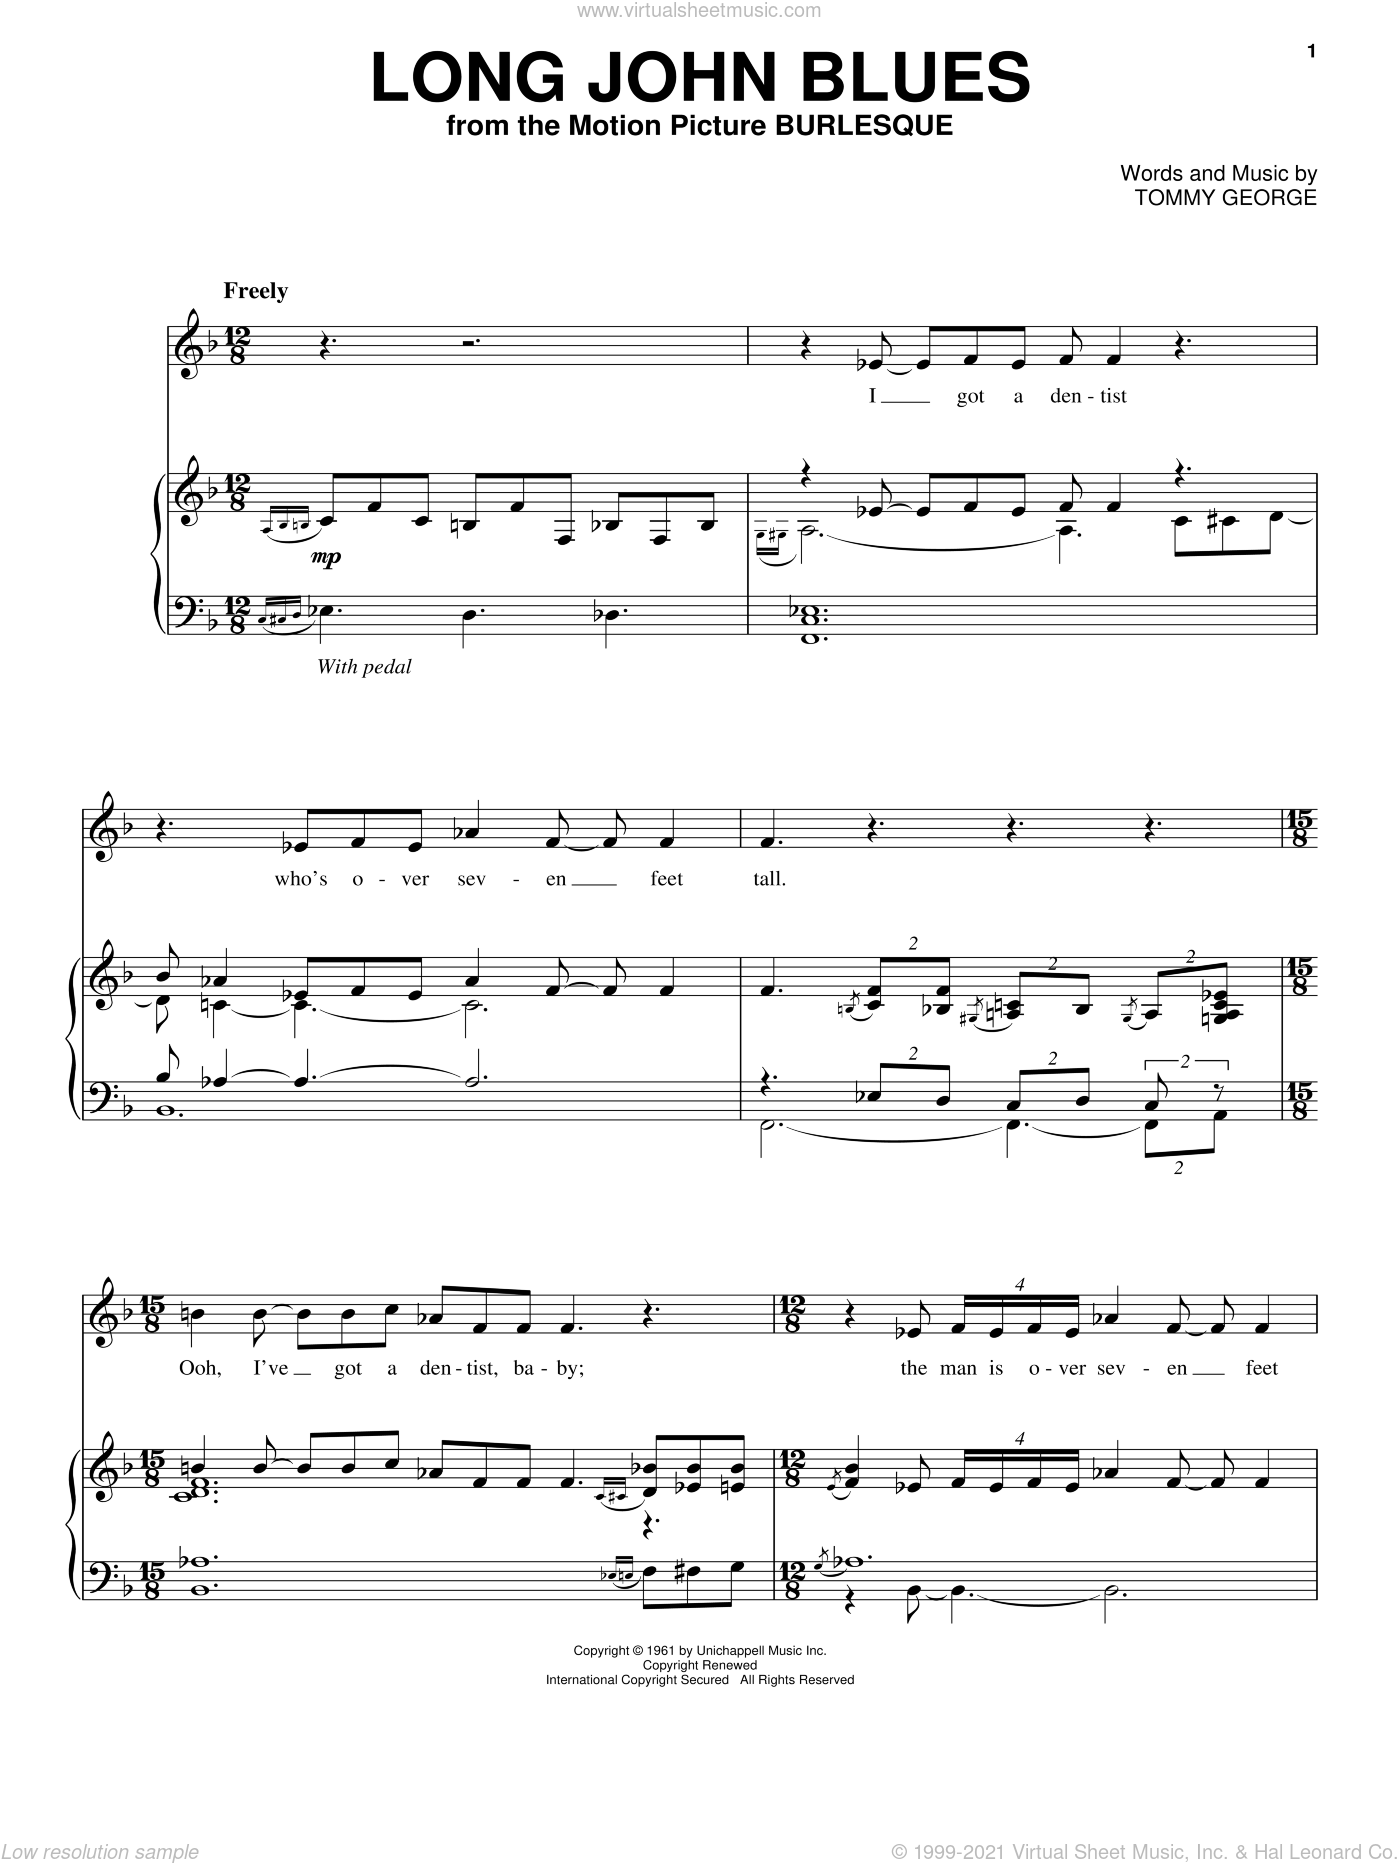 Long John Blues sheet music for voice, piano or guitar by Tommy George and Burlesque (Movie), intermediate skill level